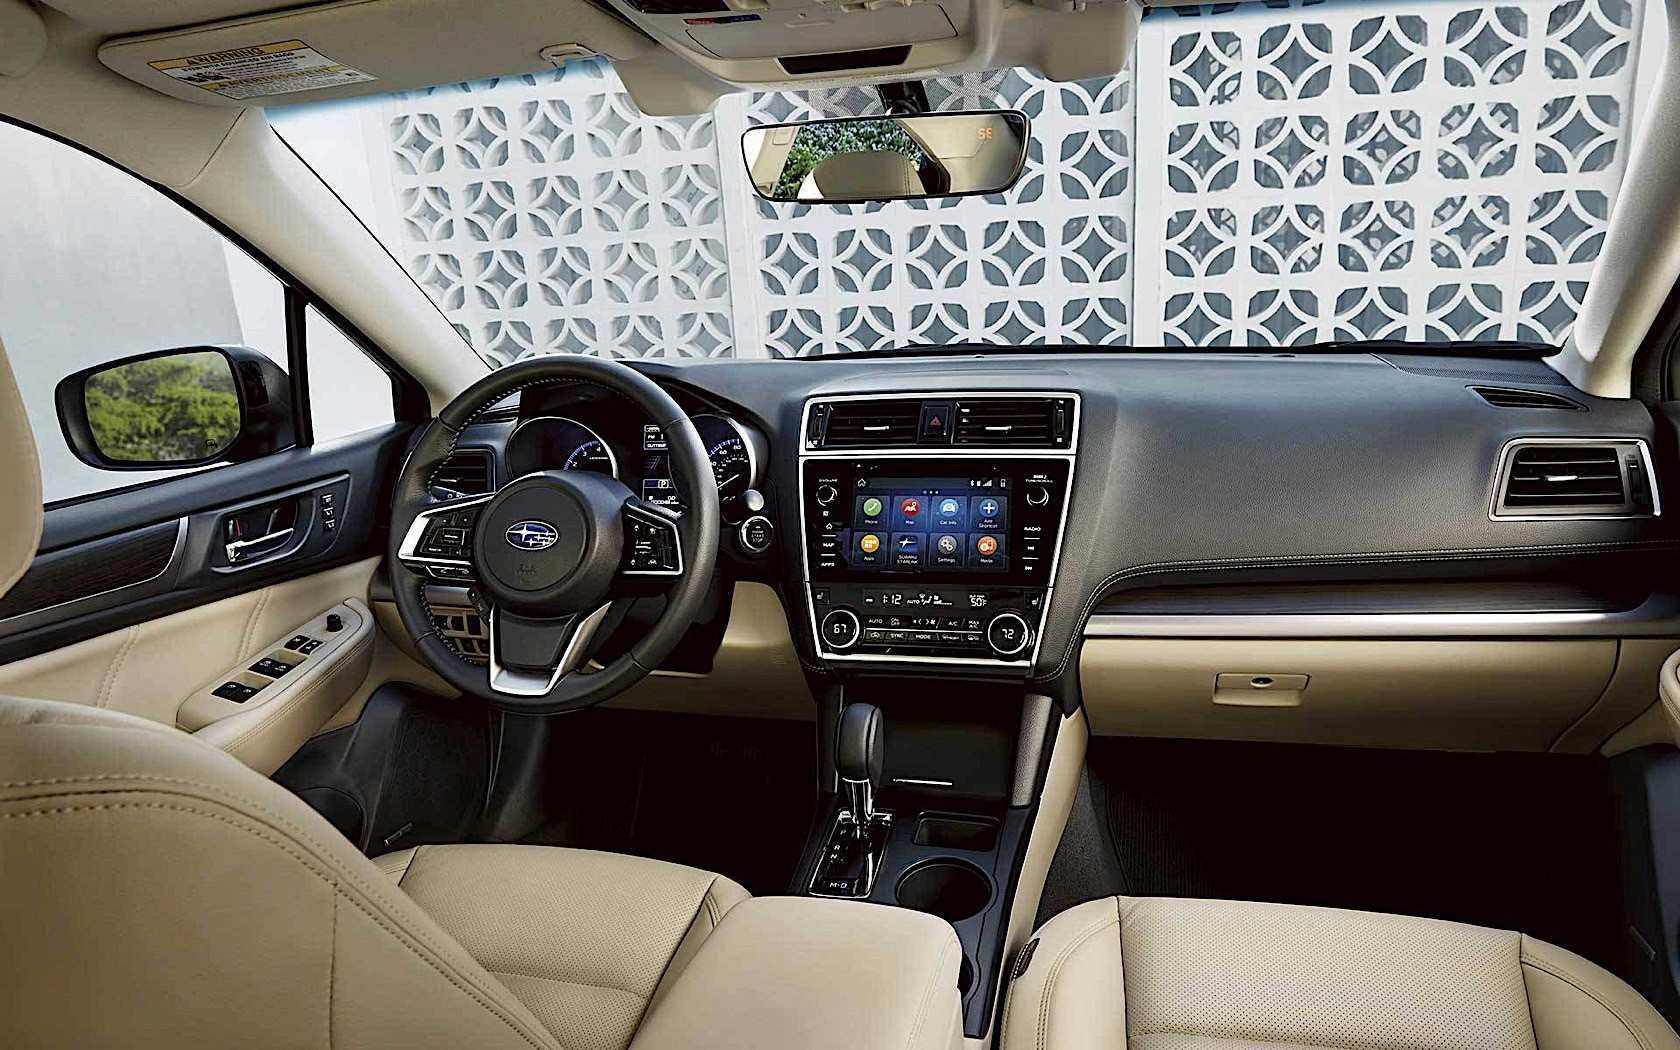 59 New Subaru Legacy 2020 Interior Price Design And Review